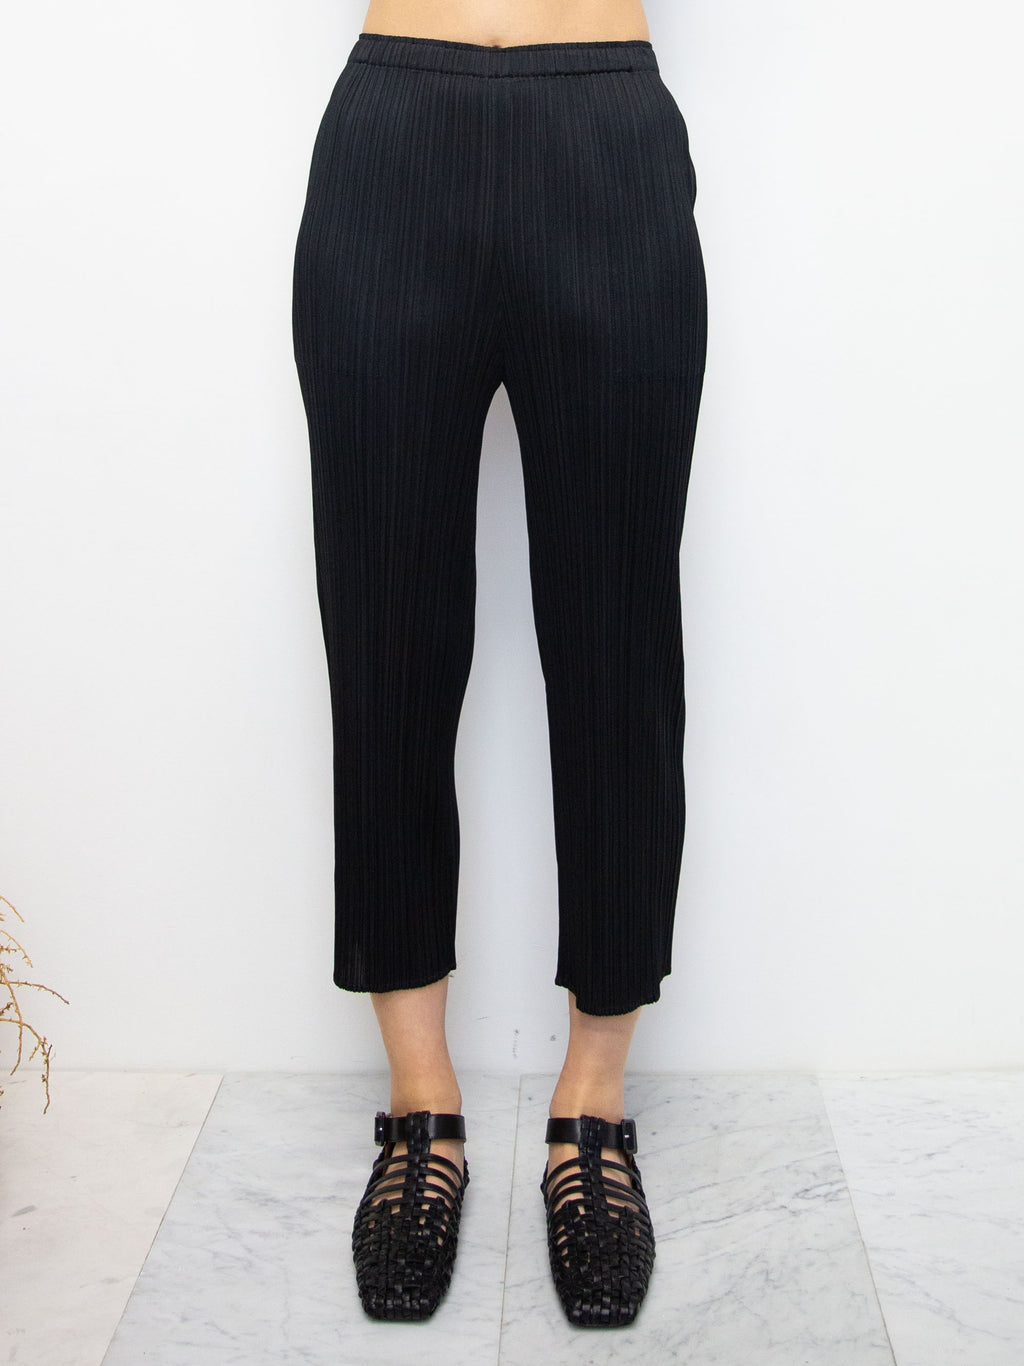 Basics Cropped Pants with Pockets - Black